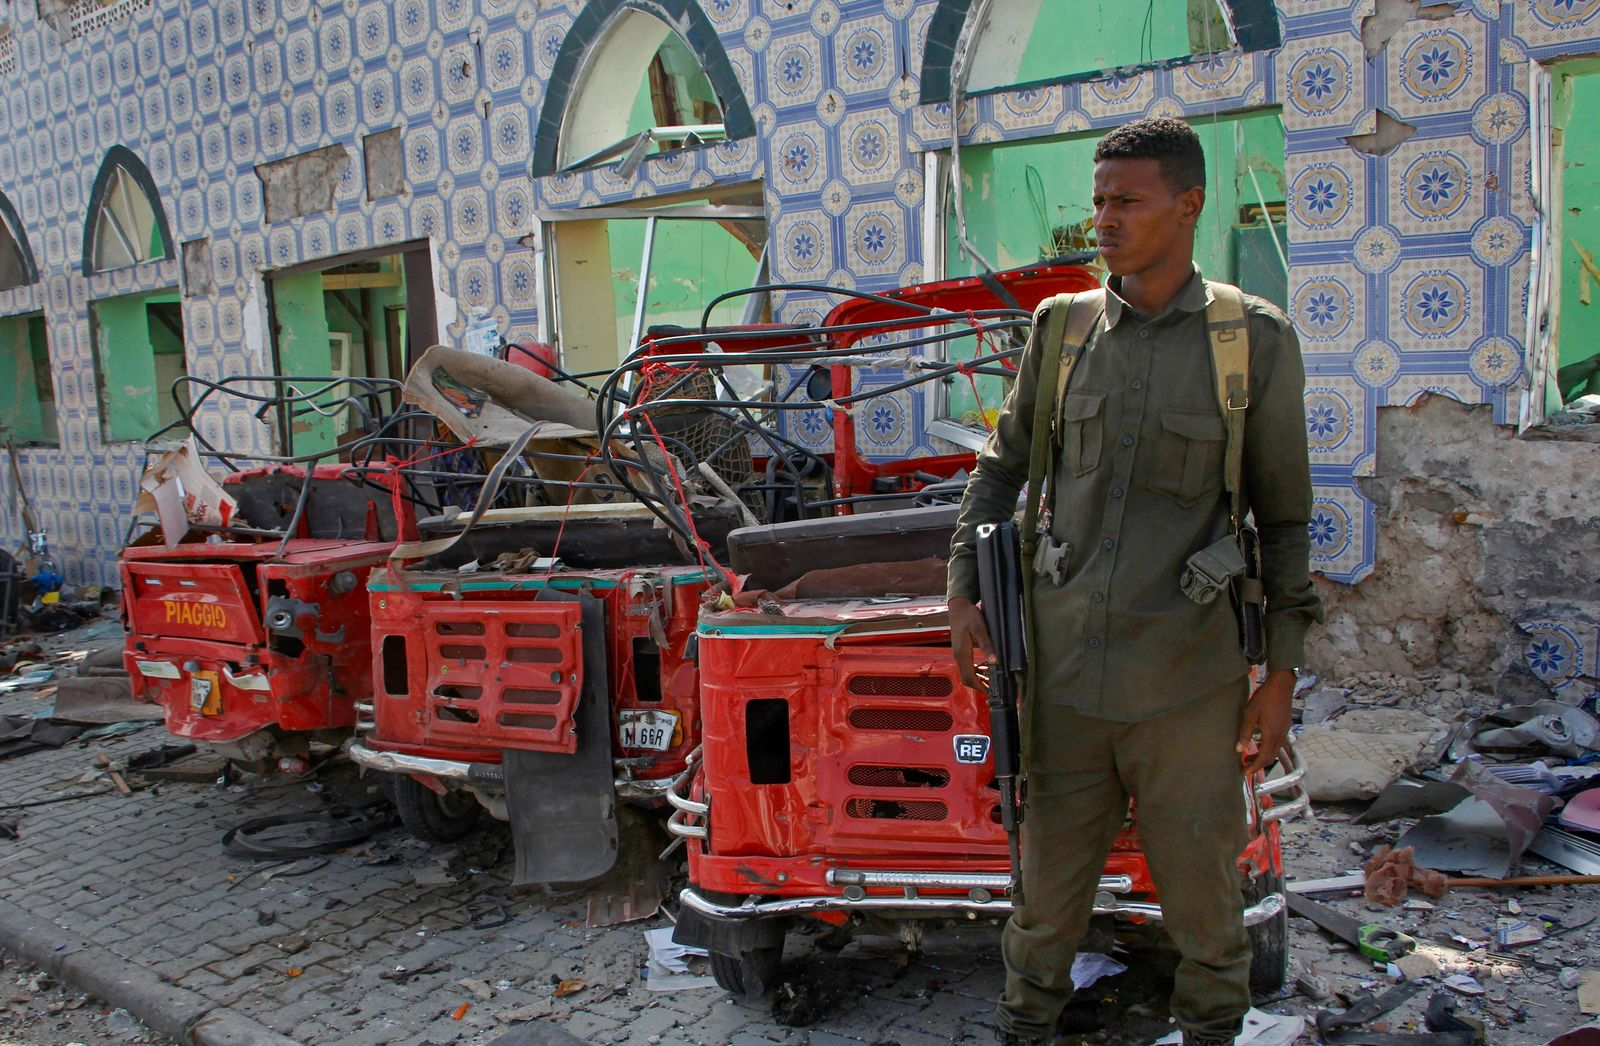 Security forces stand near the wreckage of three-wheeled vehicles destroyed in a bomb attack in the capital Mogadishu, Somalia Saturday, June 15, 2019. (AP Photo/Farah Abdi Warsameh)